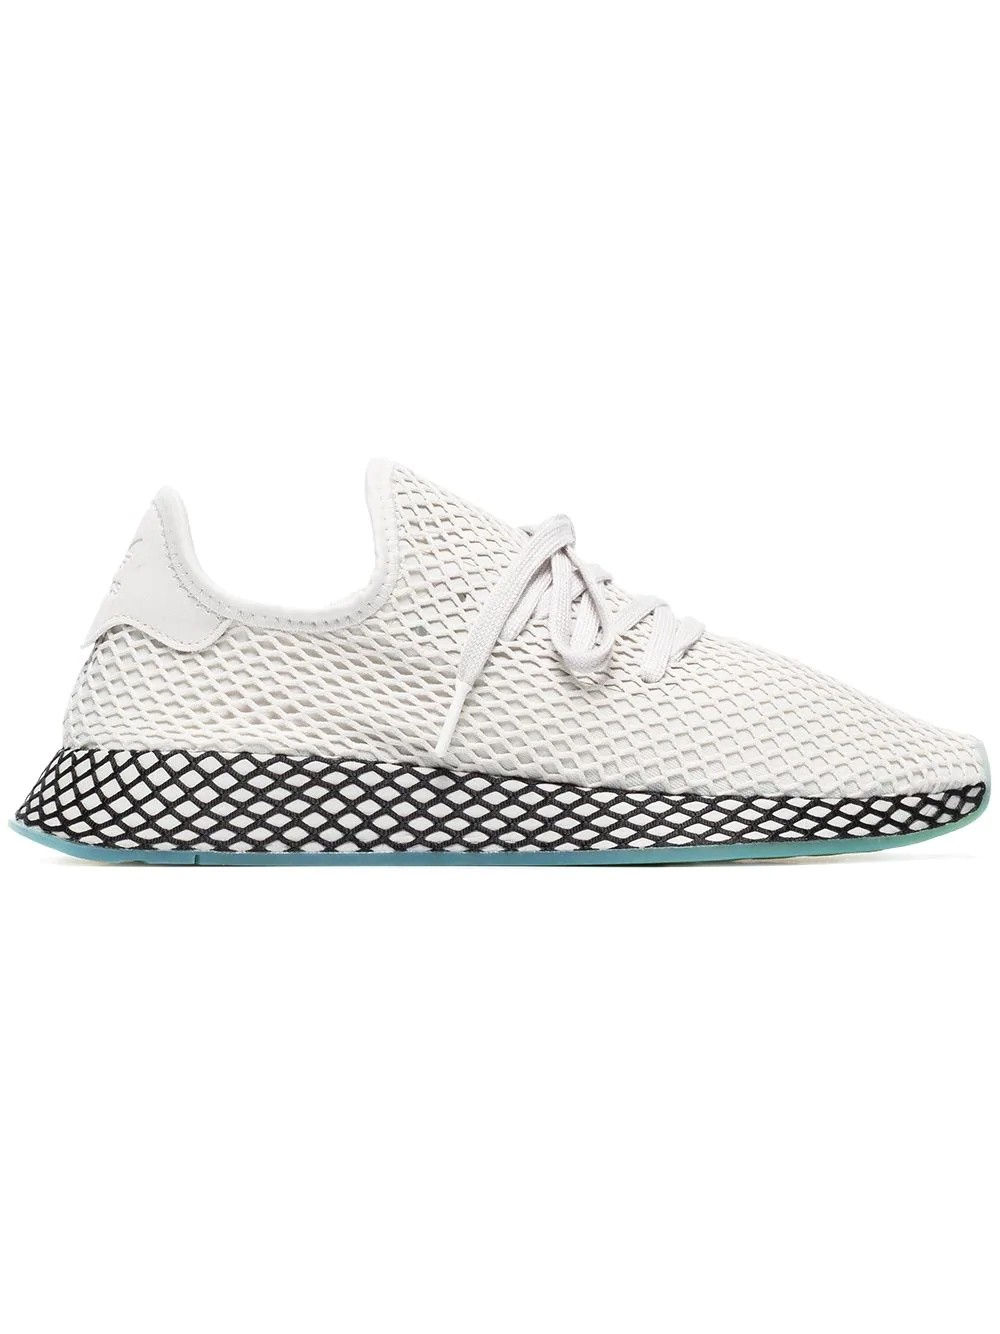 the latest c8d38 7c024 Adidas Originals Deerupt  Grises  Sneakers  B41754